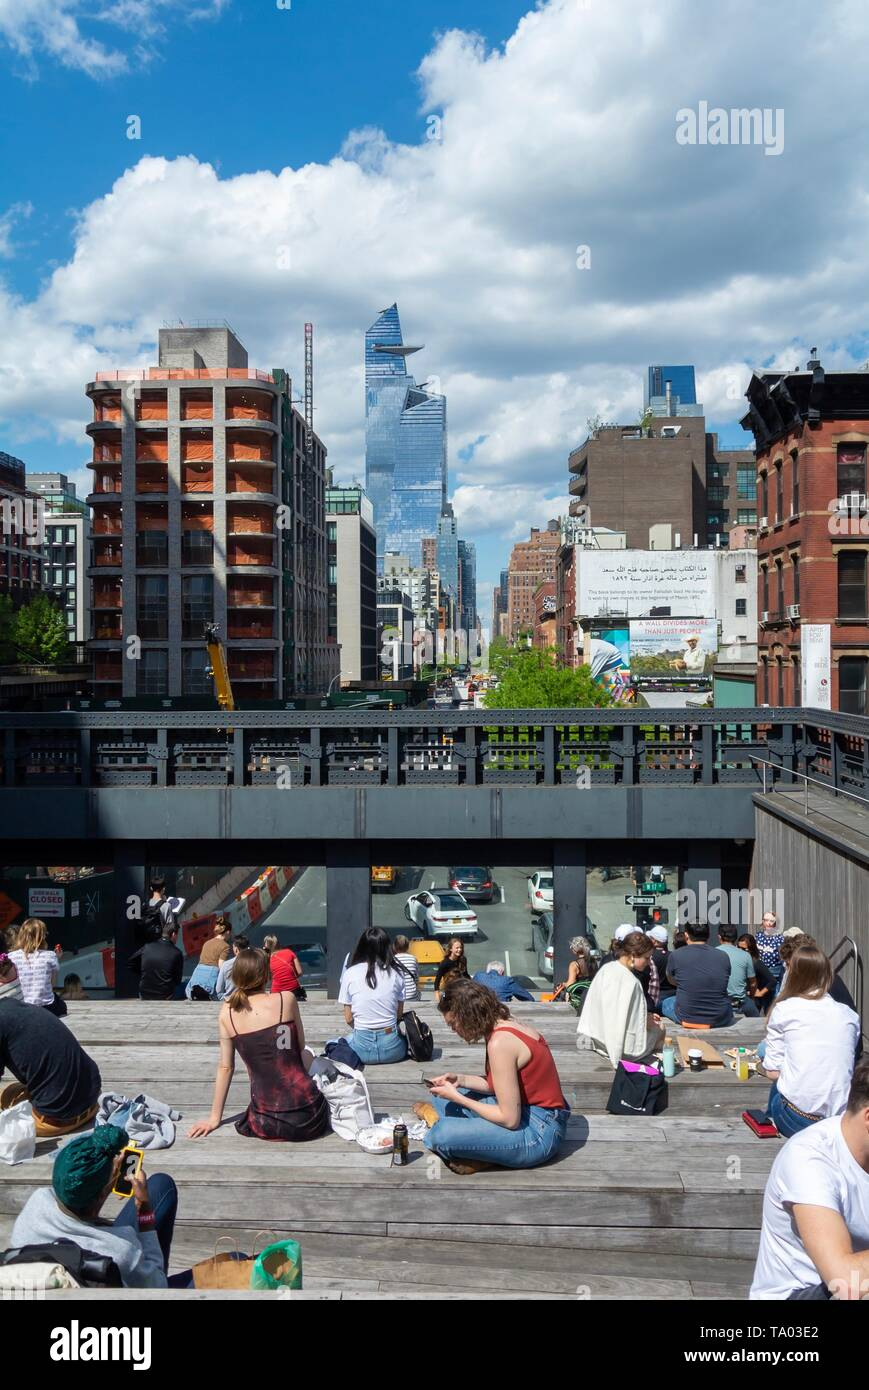 People relaxing at the high line, urban park redeveloped from an abandoned elevated rail line in Chelsea, Manhattan New york city, NY / USA Stock Photo